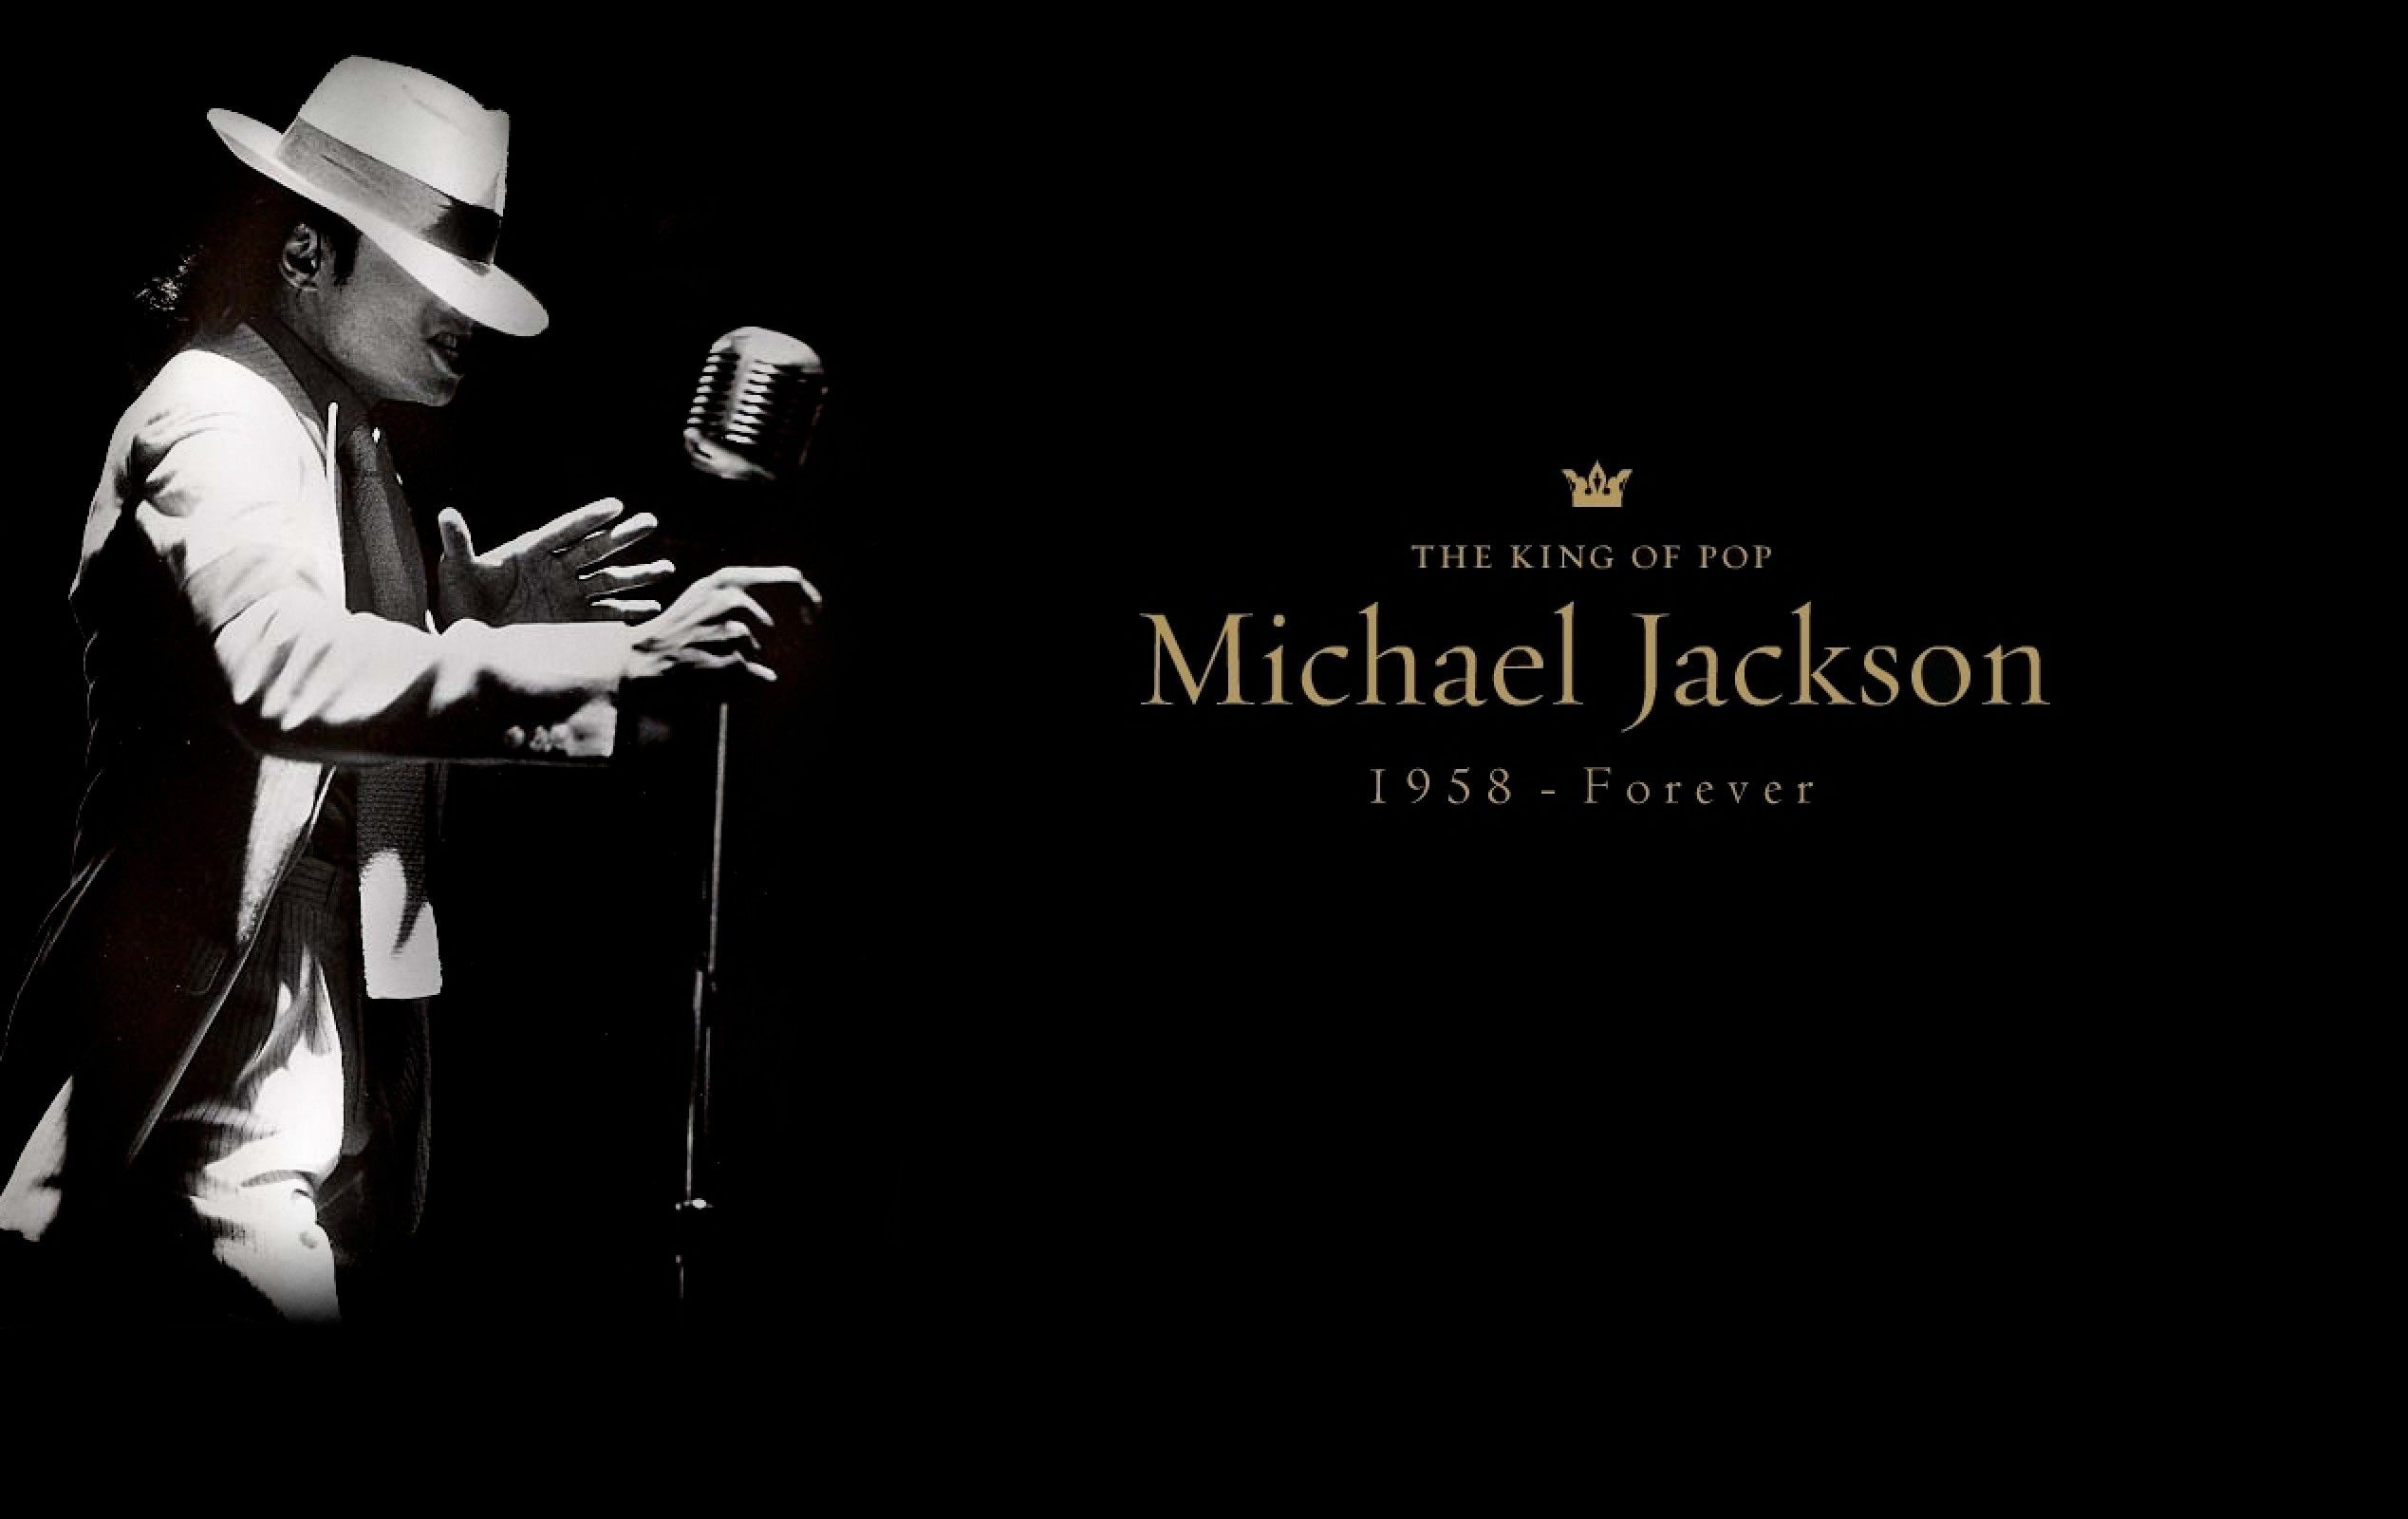 Michael Jackson HD Wallpapers U2022 PoPoPics